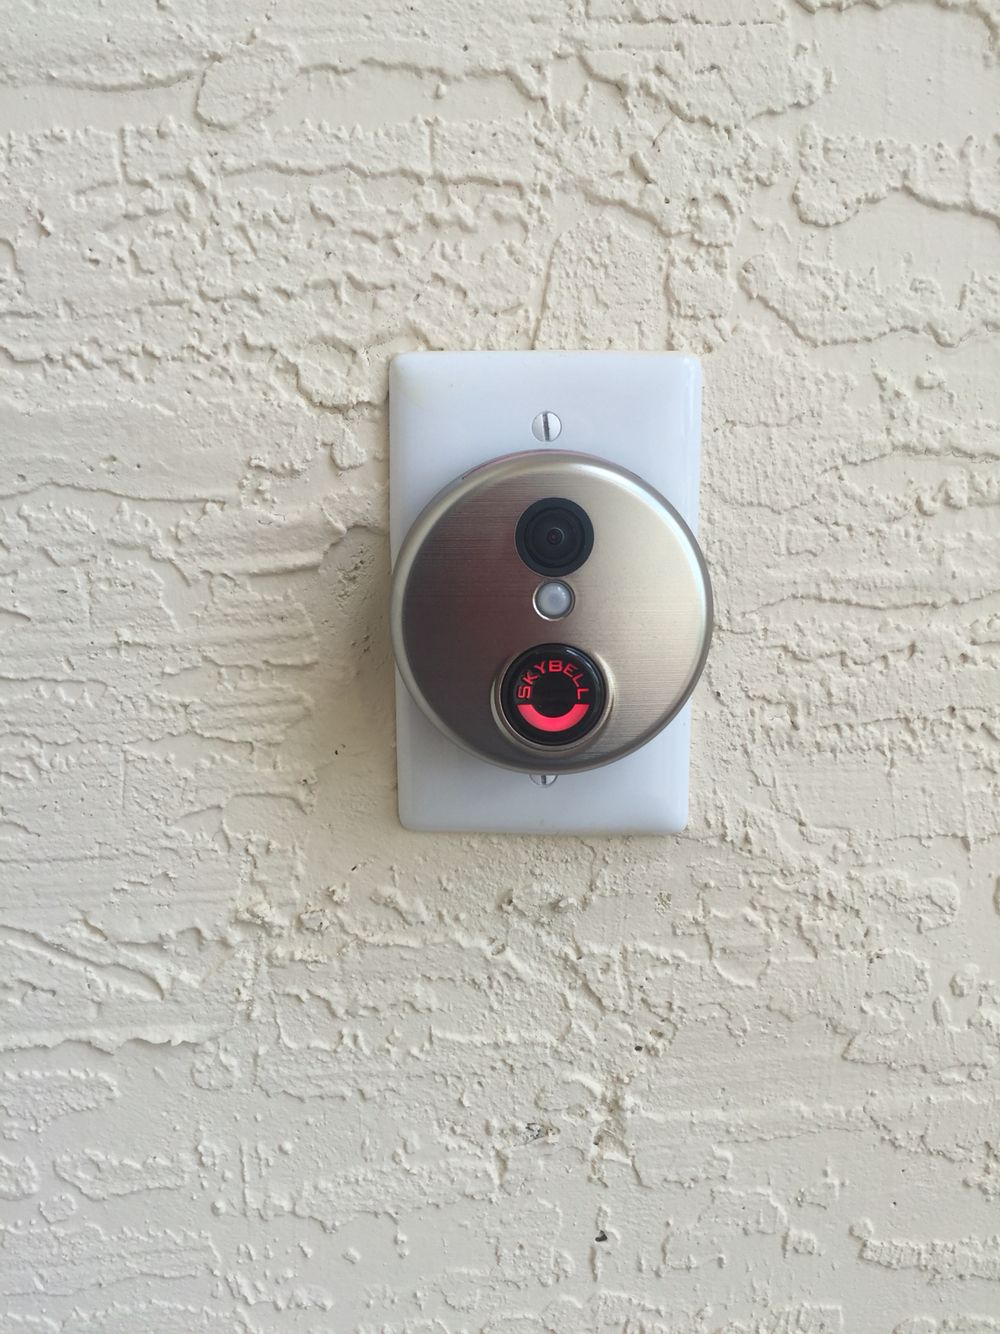 Replace Old The Doorbell Vortex Security 954 616 9357 Light Fence Beeper